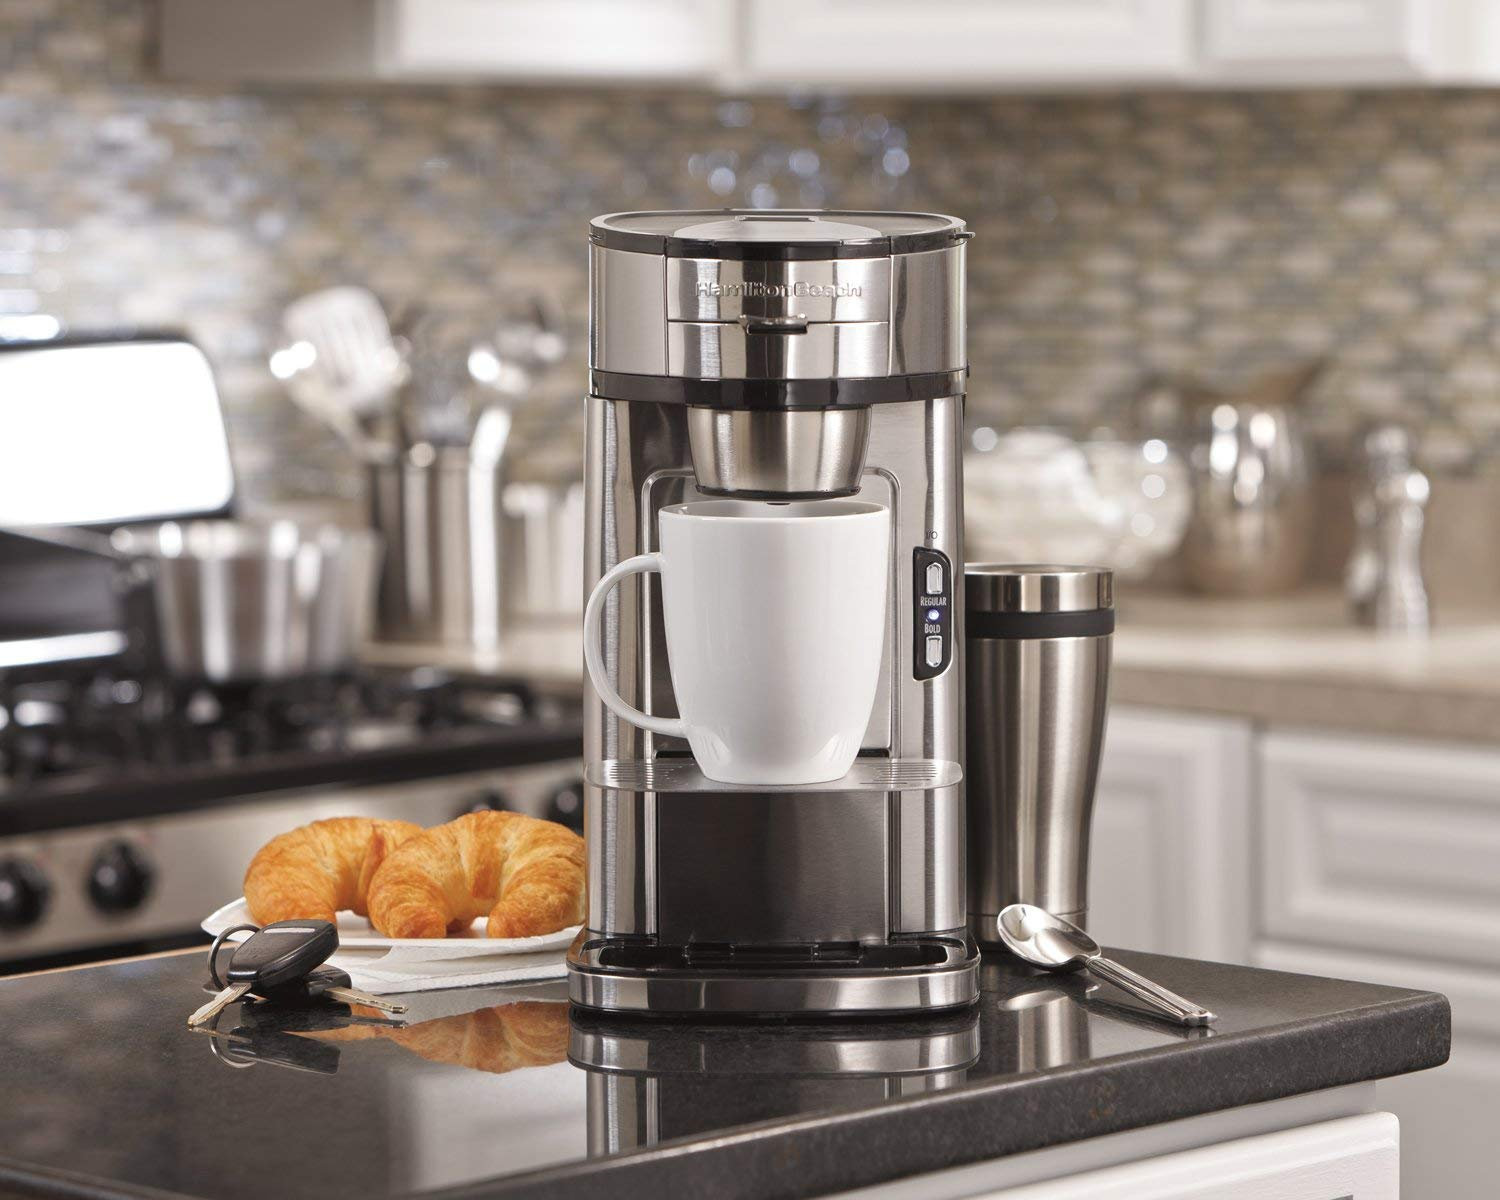 This Coffee Maker Has More Than 6,000 Perfect Ratings on Amazon